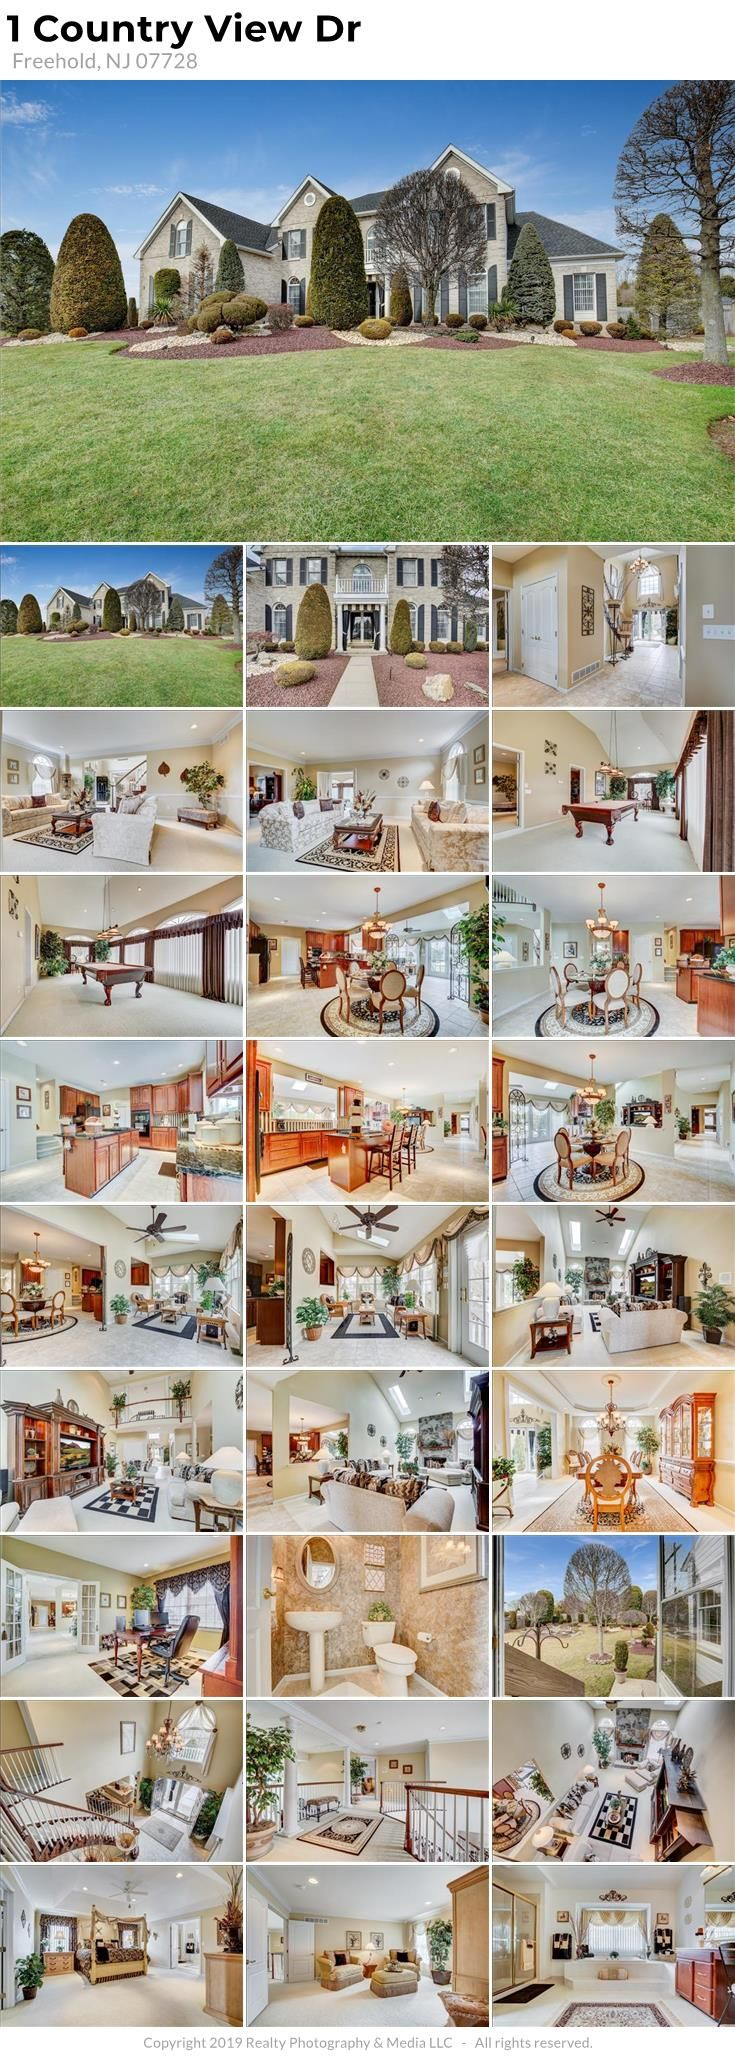 1 Country View Dr Freehold, NJ 07728 This exquisite Toll ...